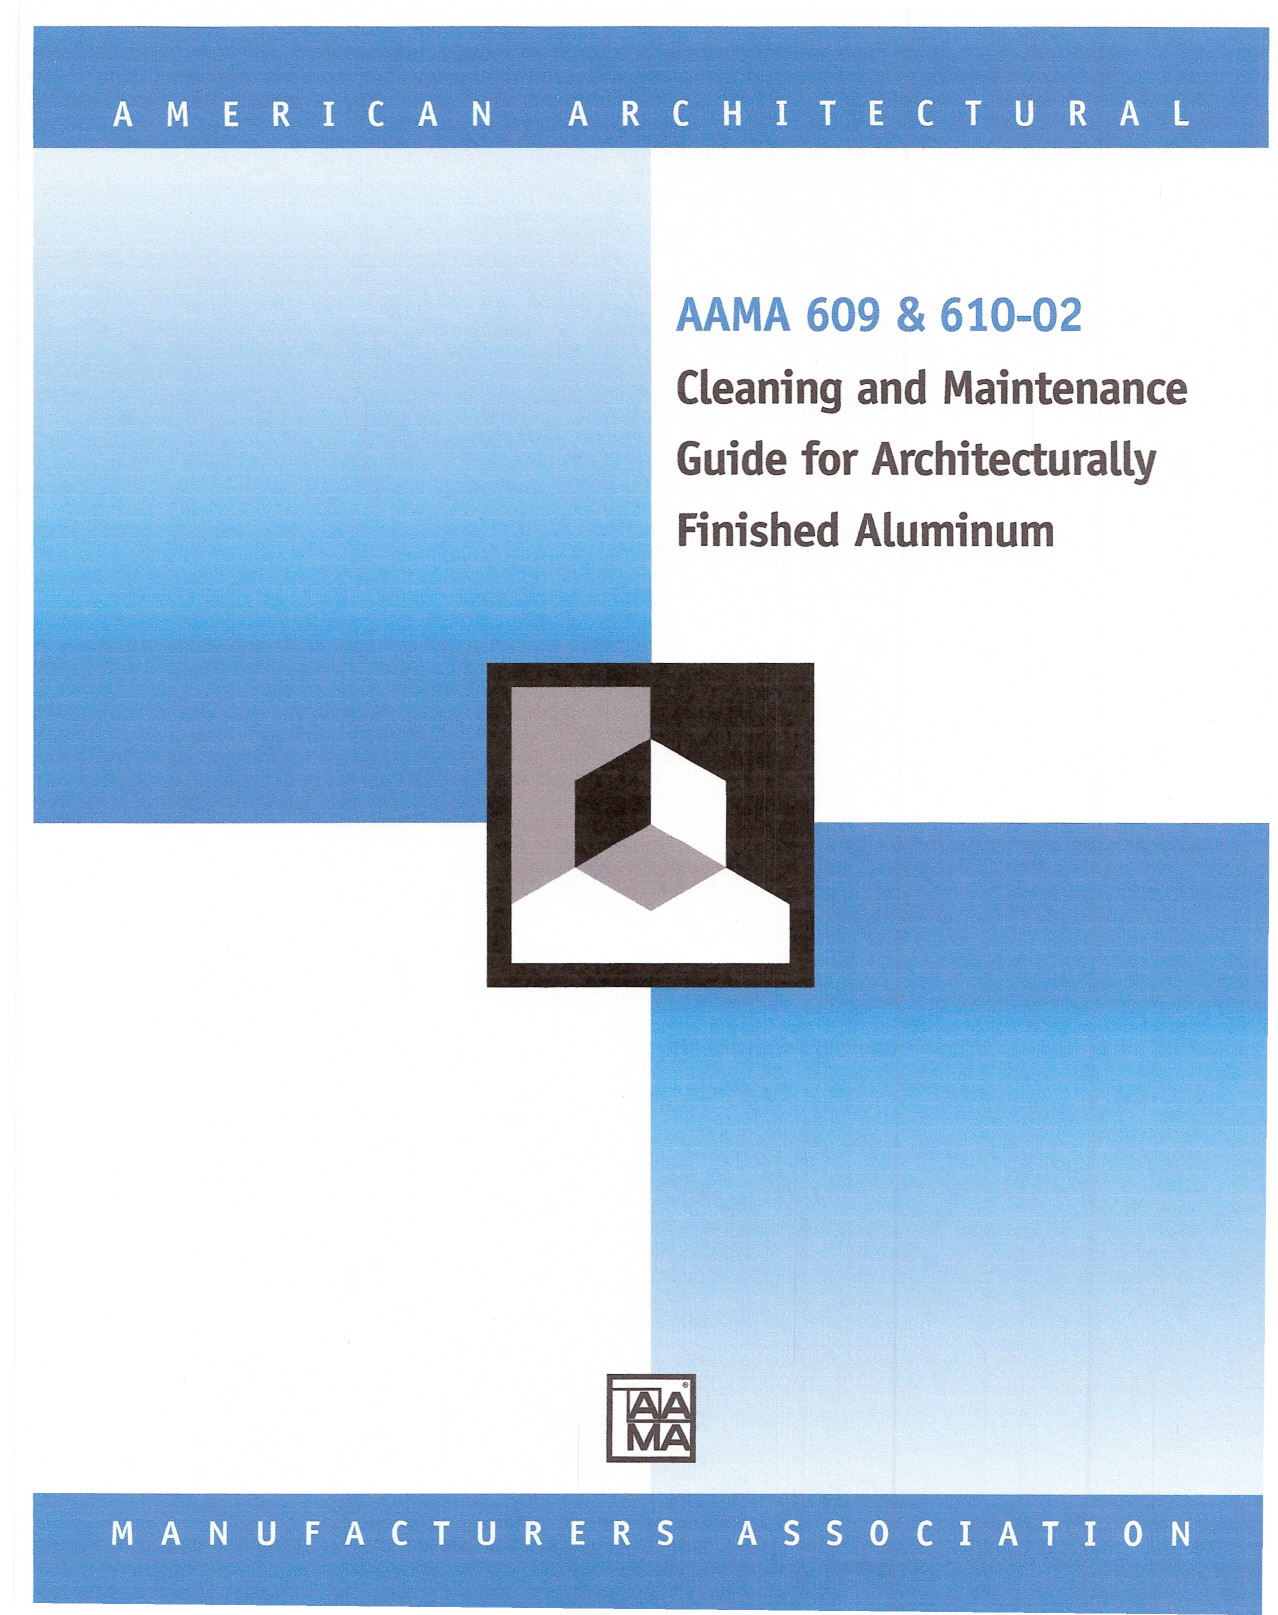 Aluminum-Cleaning-Maintenance-Guide-Architecturally-Finished-Aluminum_Page_1